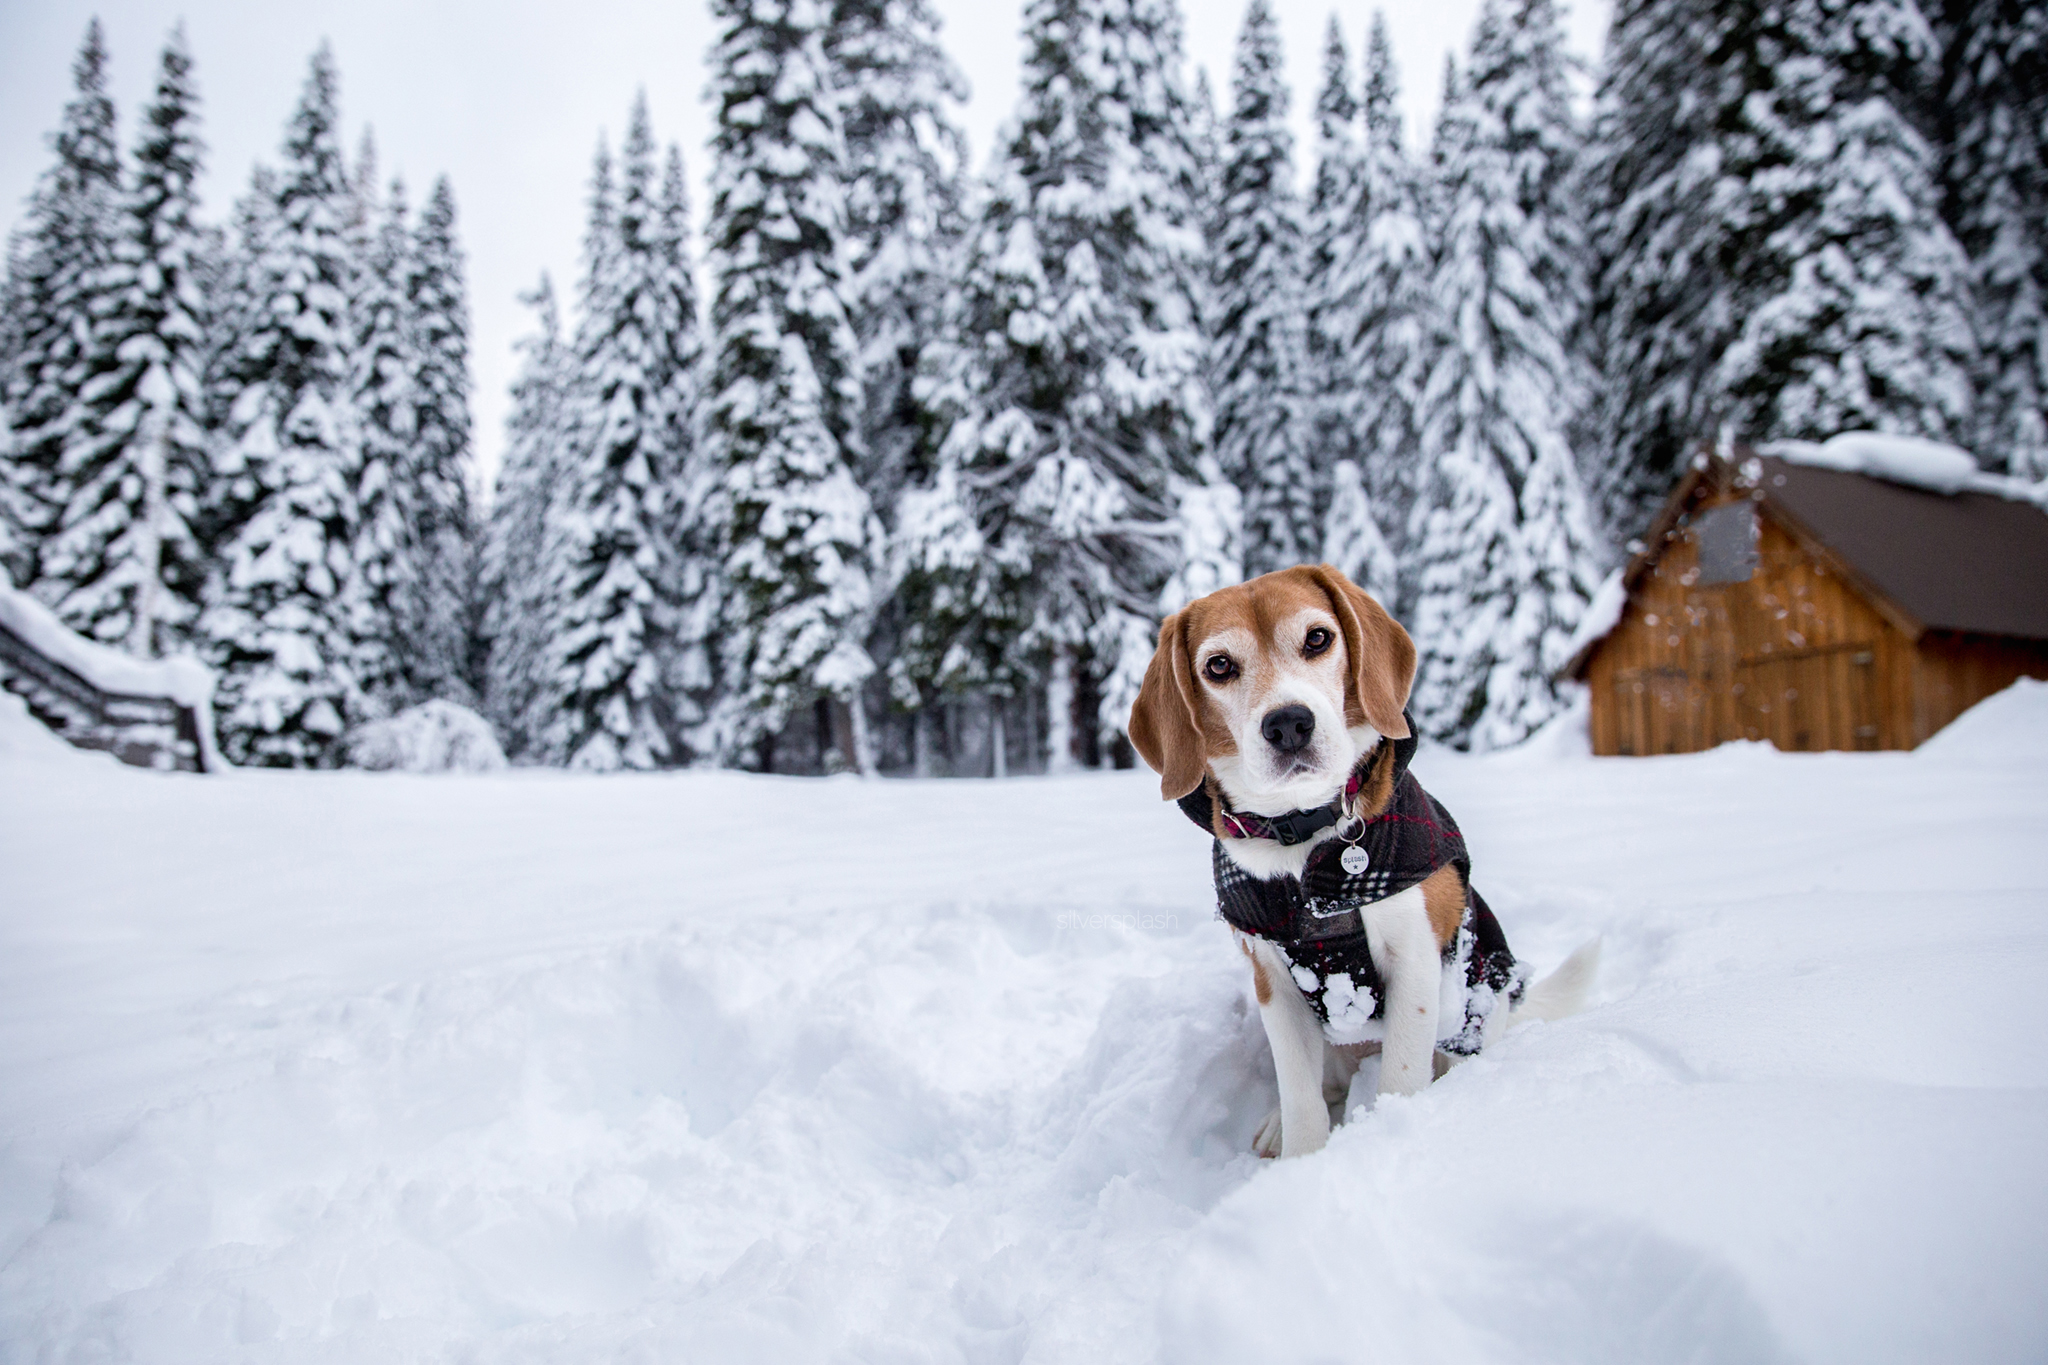 Snow-beagle-graeagle-wm.jpg